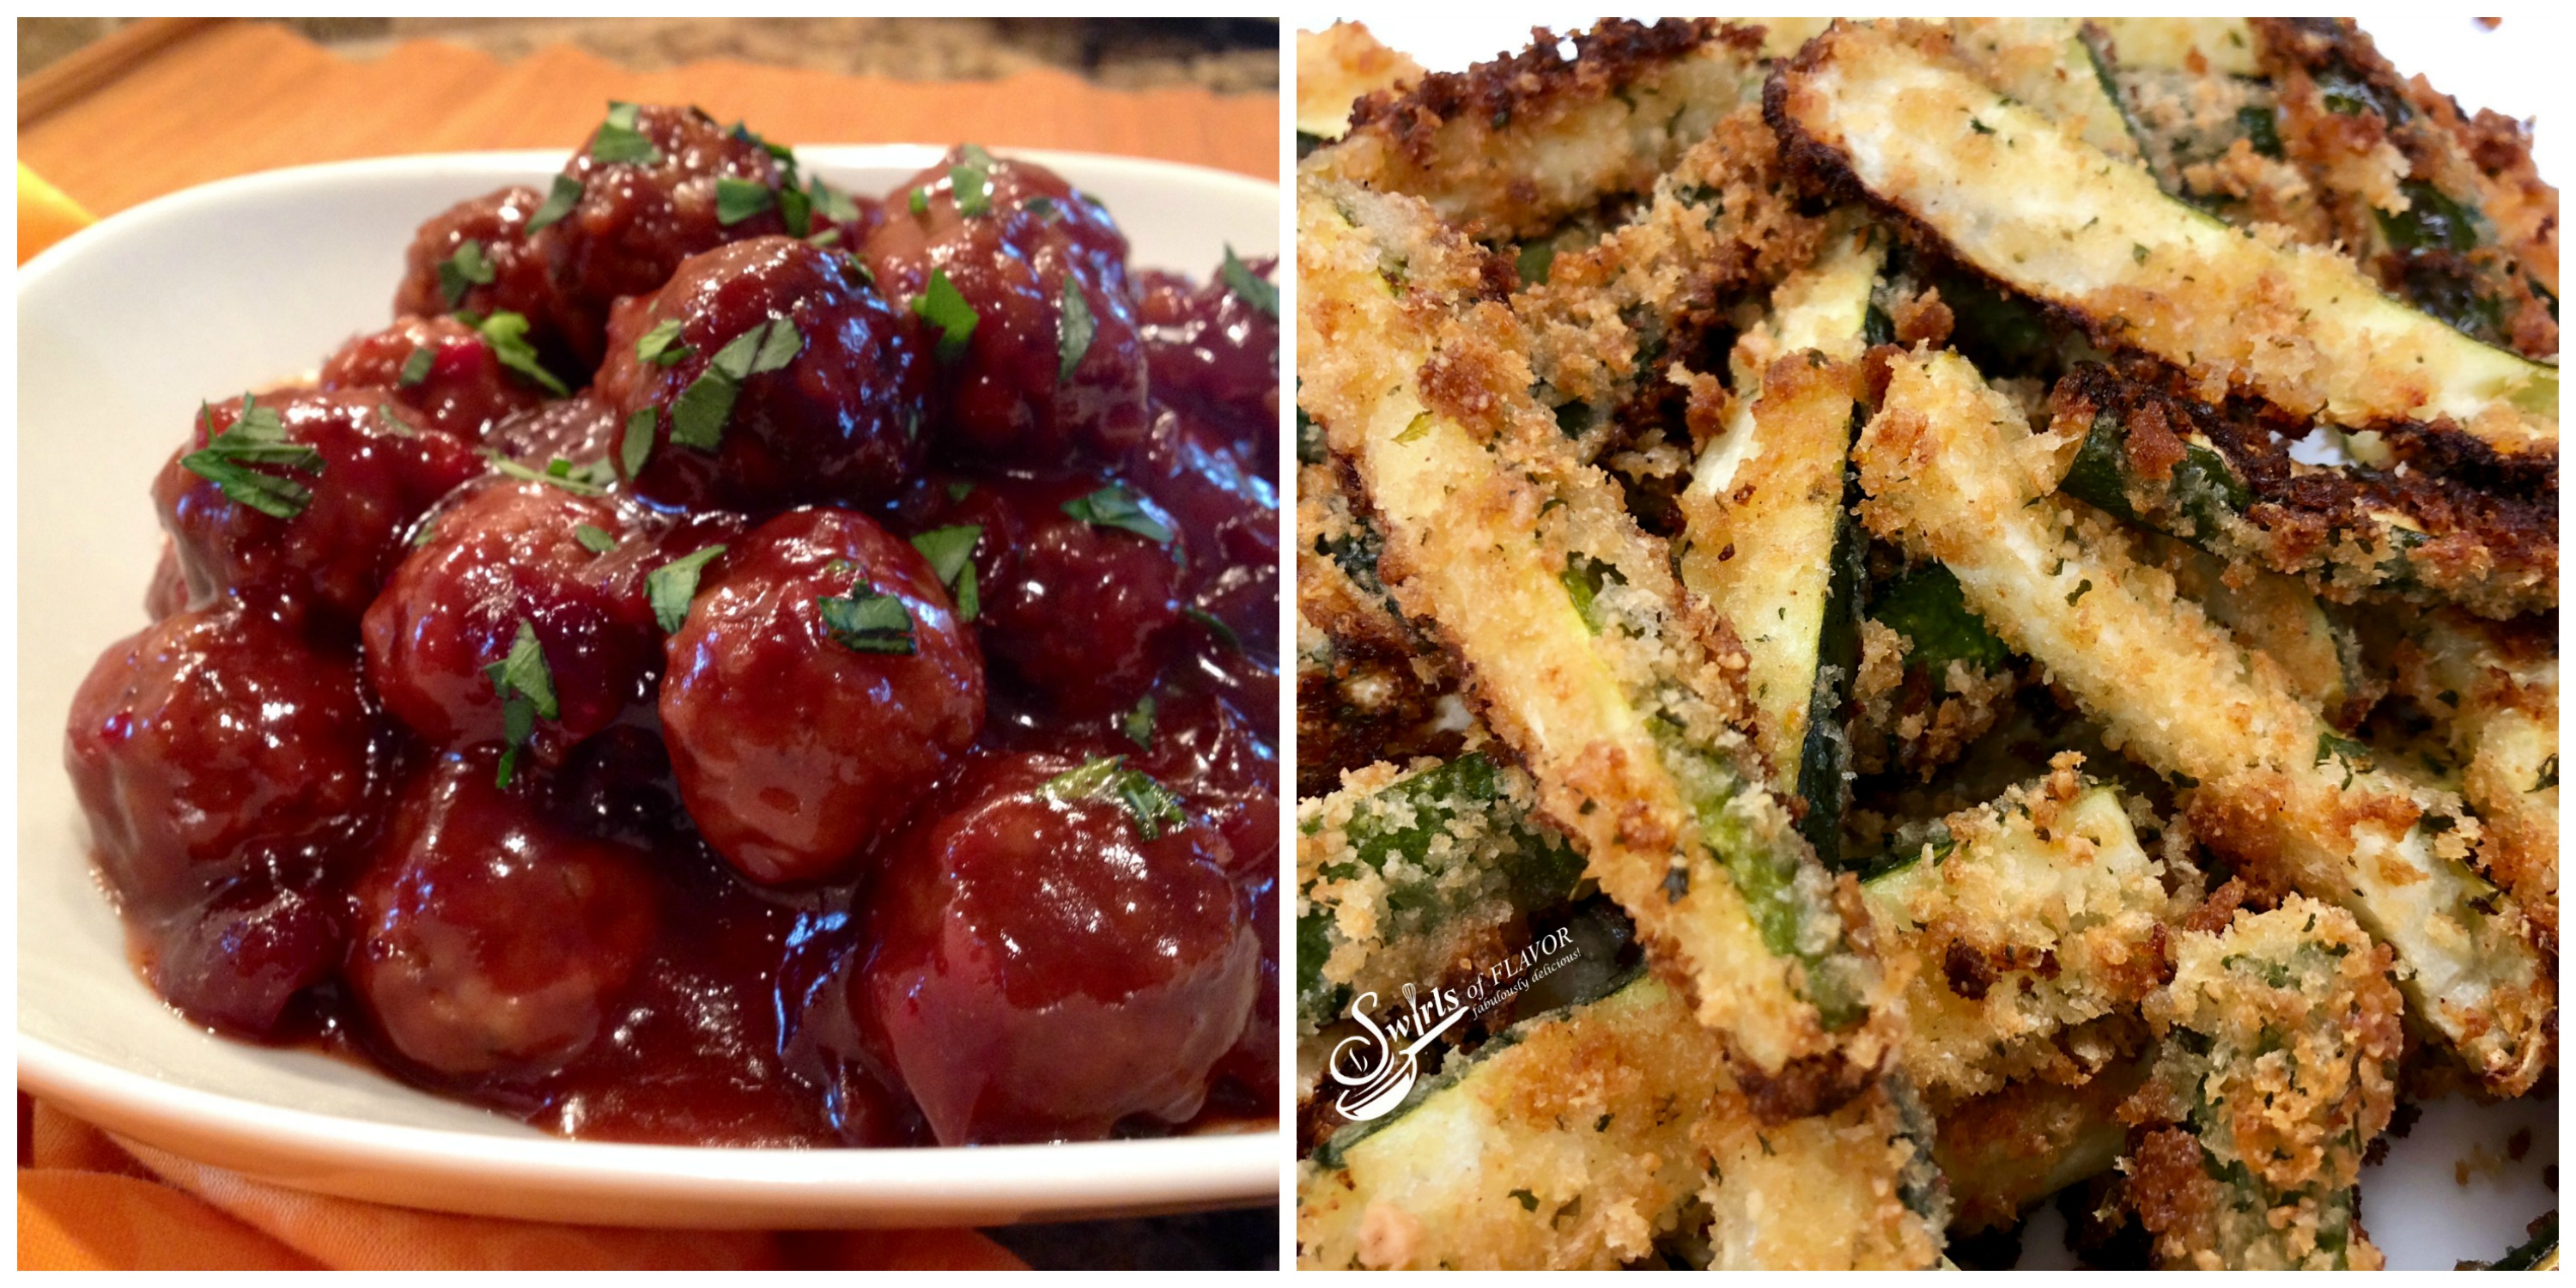 Cranberry Meatballs and Zucchini Fries